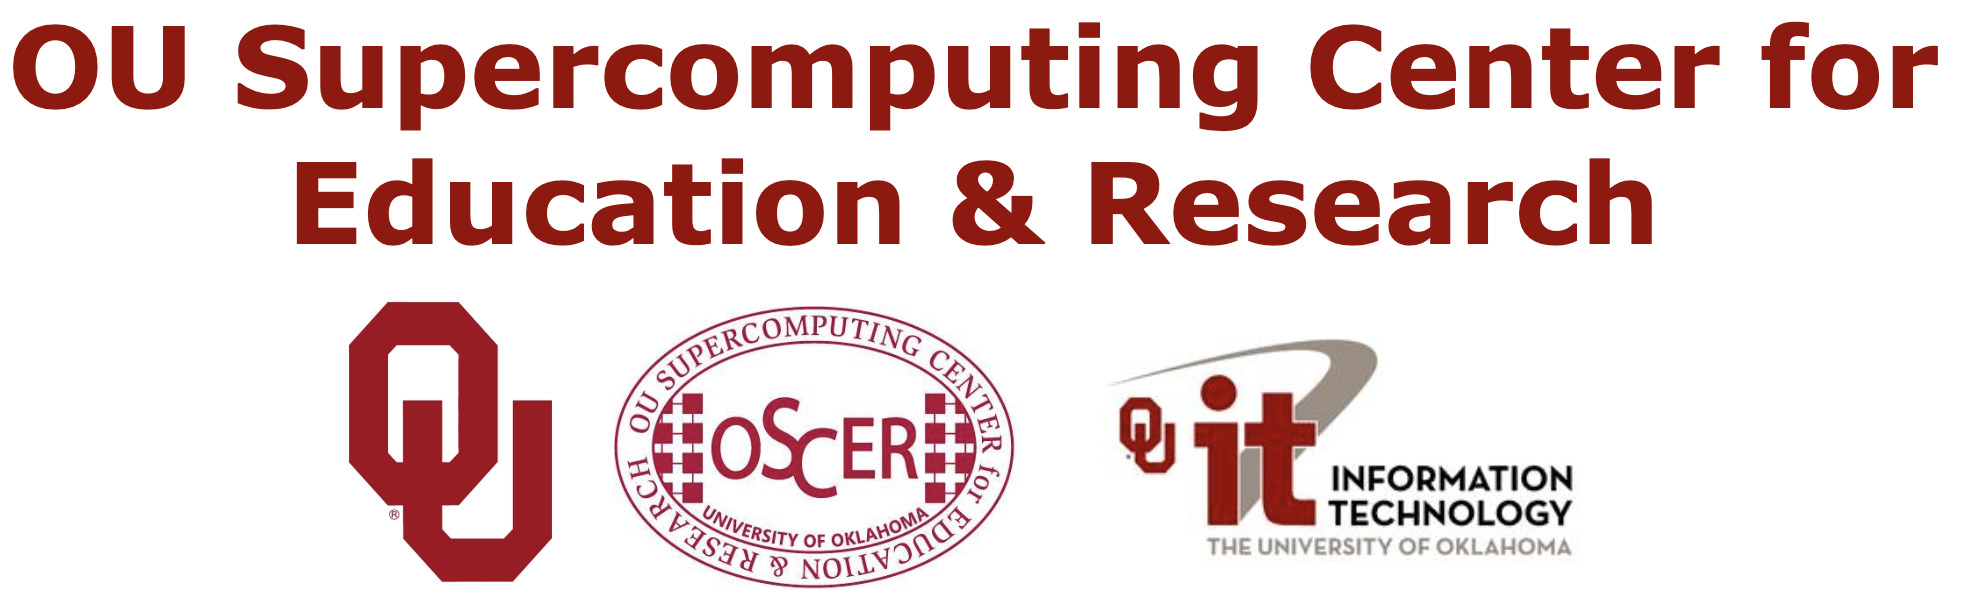 OU Supercomputing Center for Education & Research